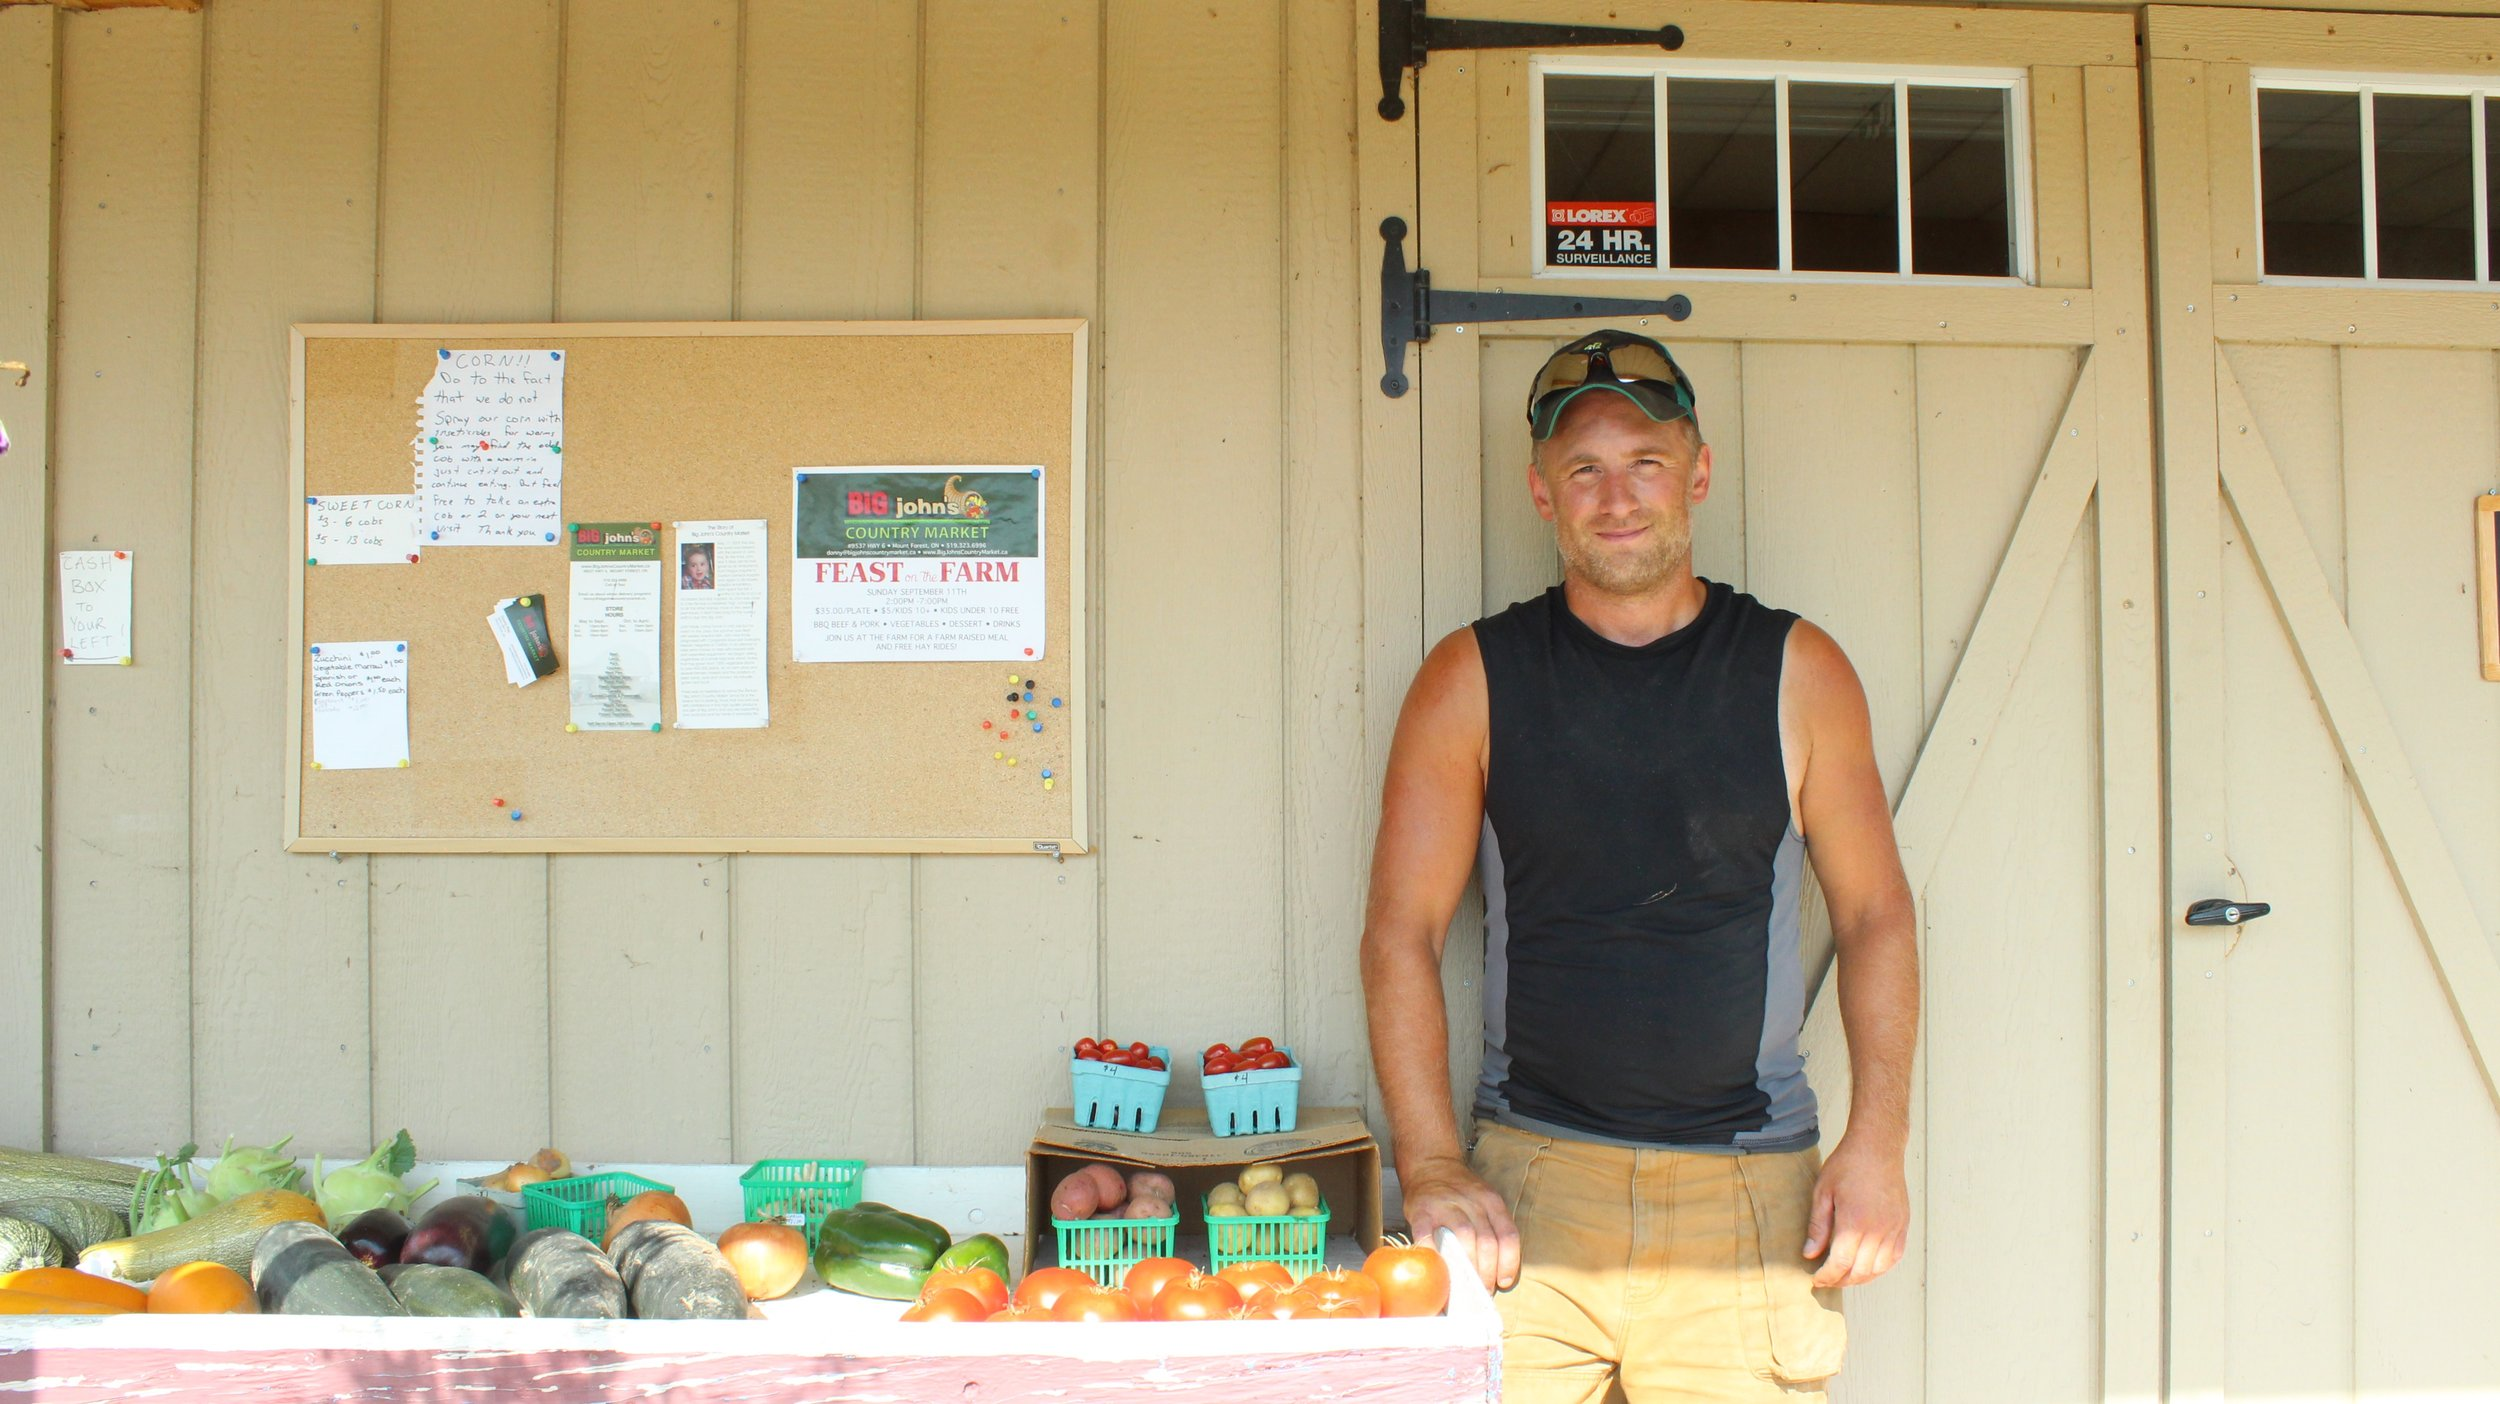 Donny, from  Big John's Country Market . Located in Mount Forest, Ontario, just 95km away from the Many Feathers Market where he sells his produce & quality cuts every Sunday!